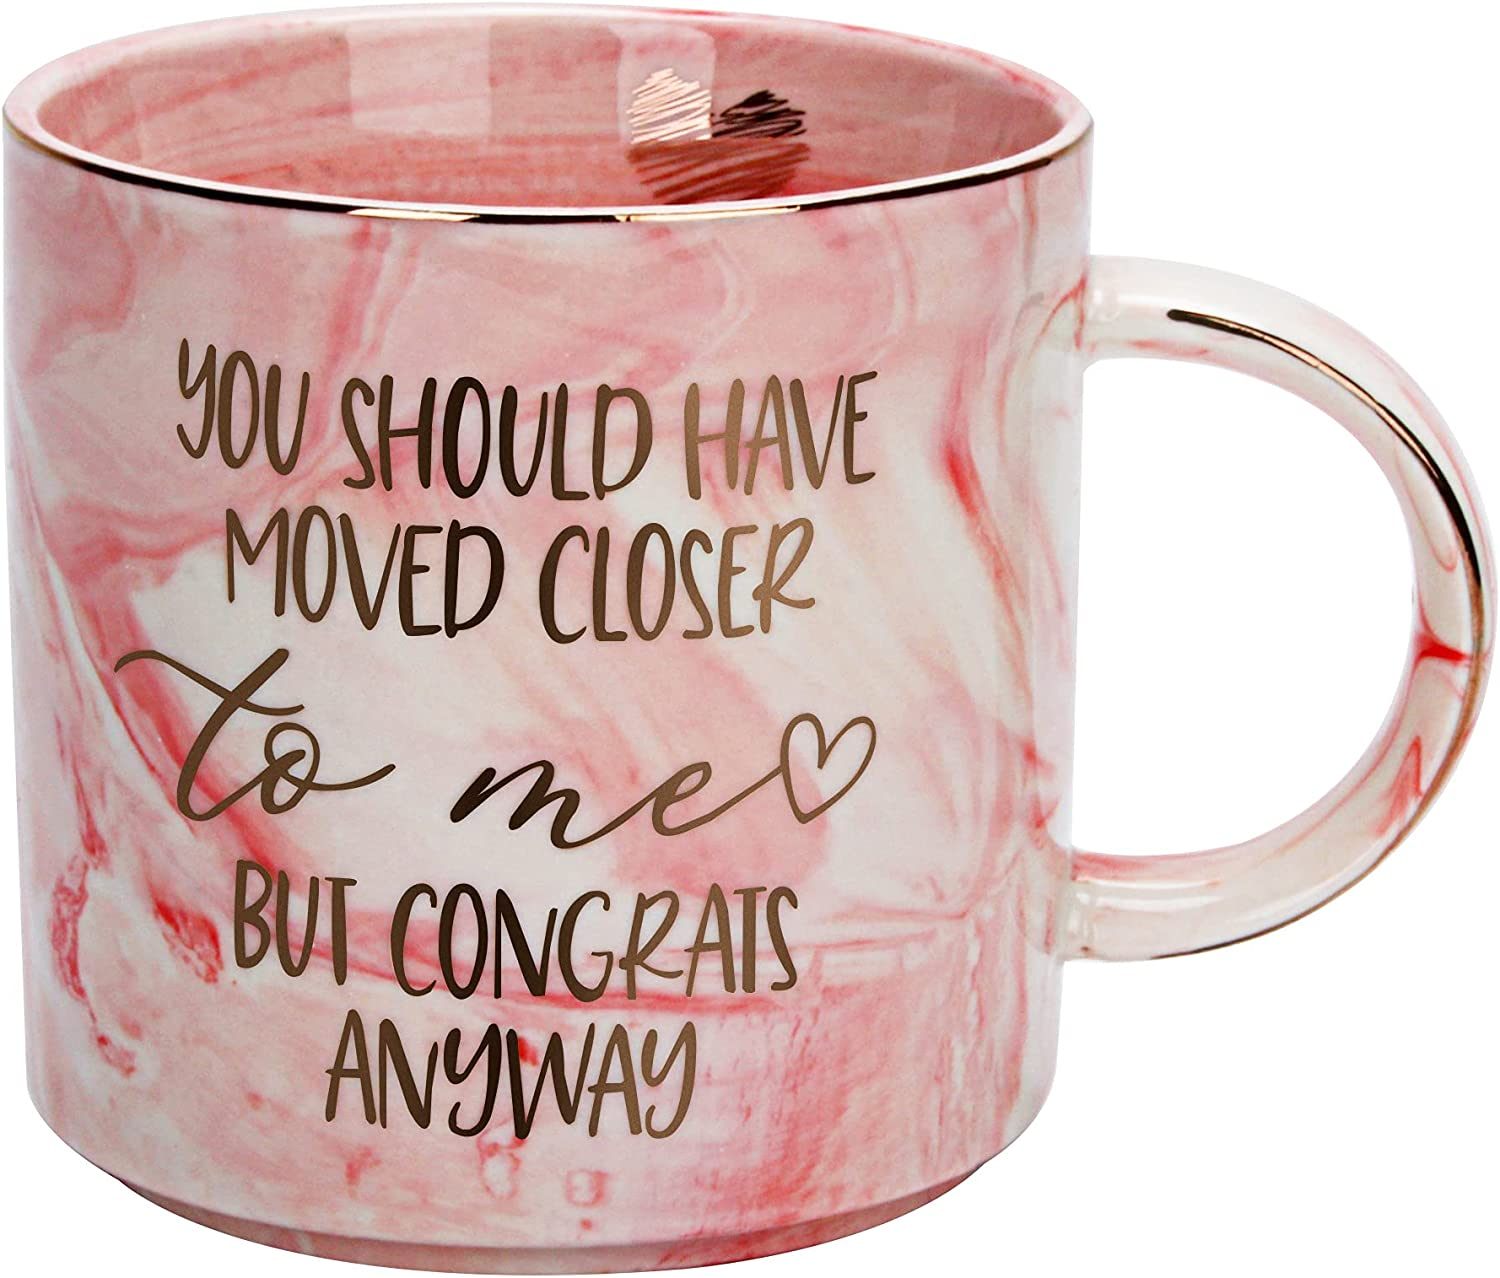 Housewarming Gifts for Women - First Home House Gifts For New Home Owner - Funny First Time House Warming Gift Ideas - You Should Have Moved Closer - Pink Marble Mug Presents, 11.5oz Coffee Cup